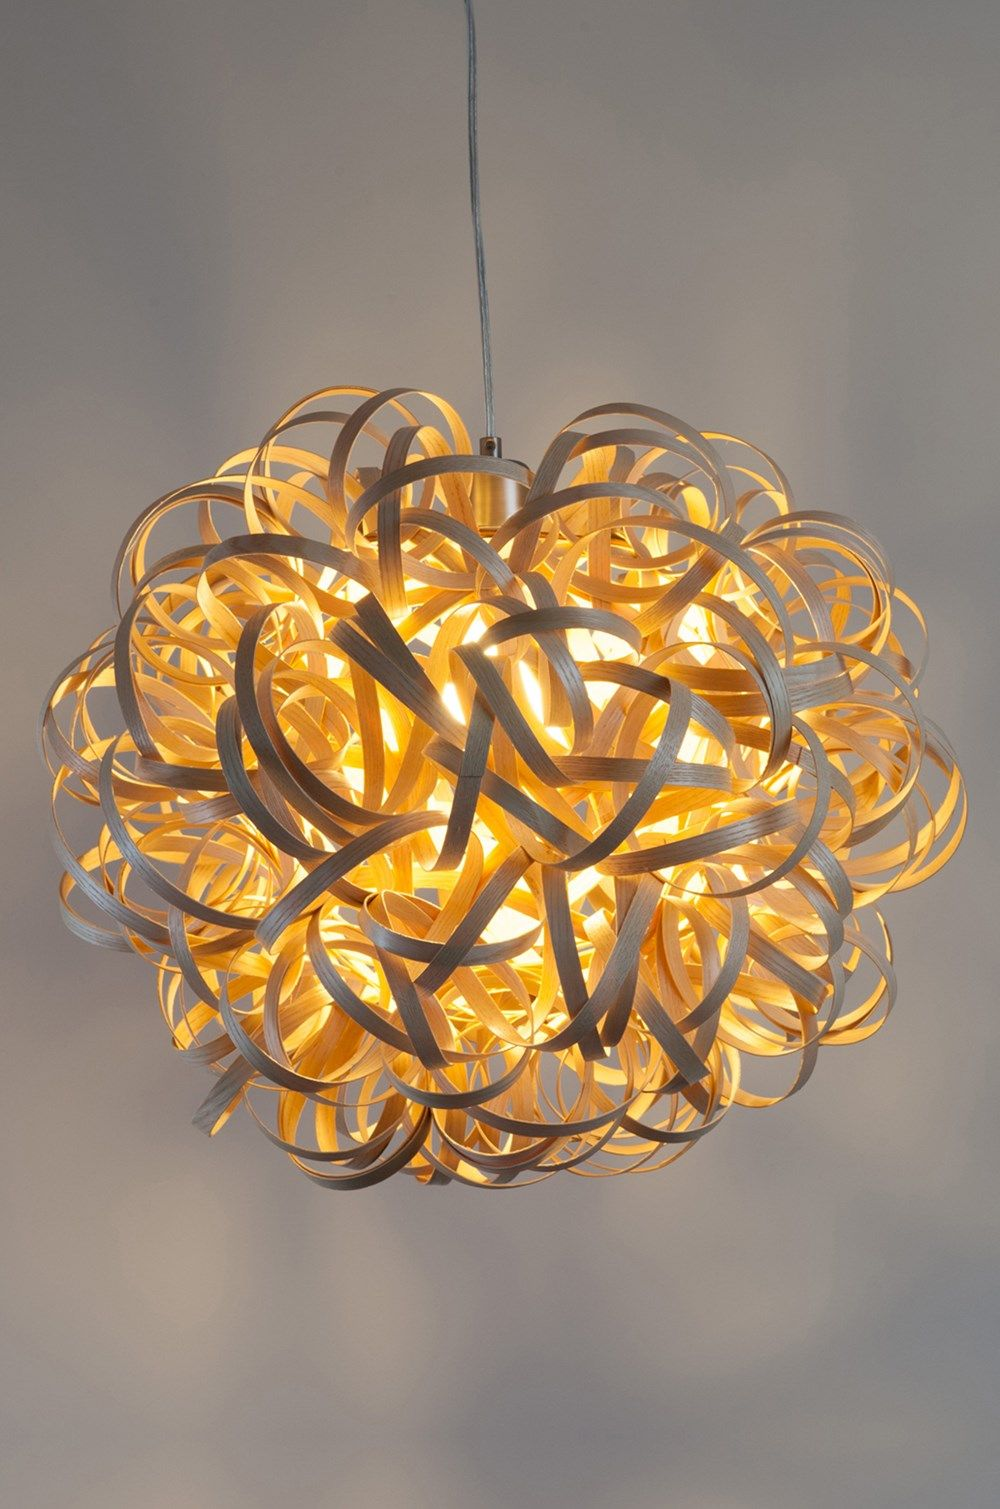 Steam Bent Ash Lampshade By Tom Raffield Radiance Tom Raffield Wood Lamps Radiance